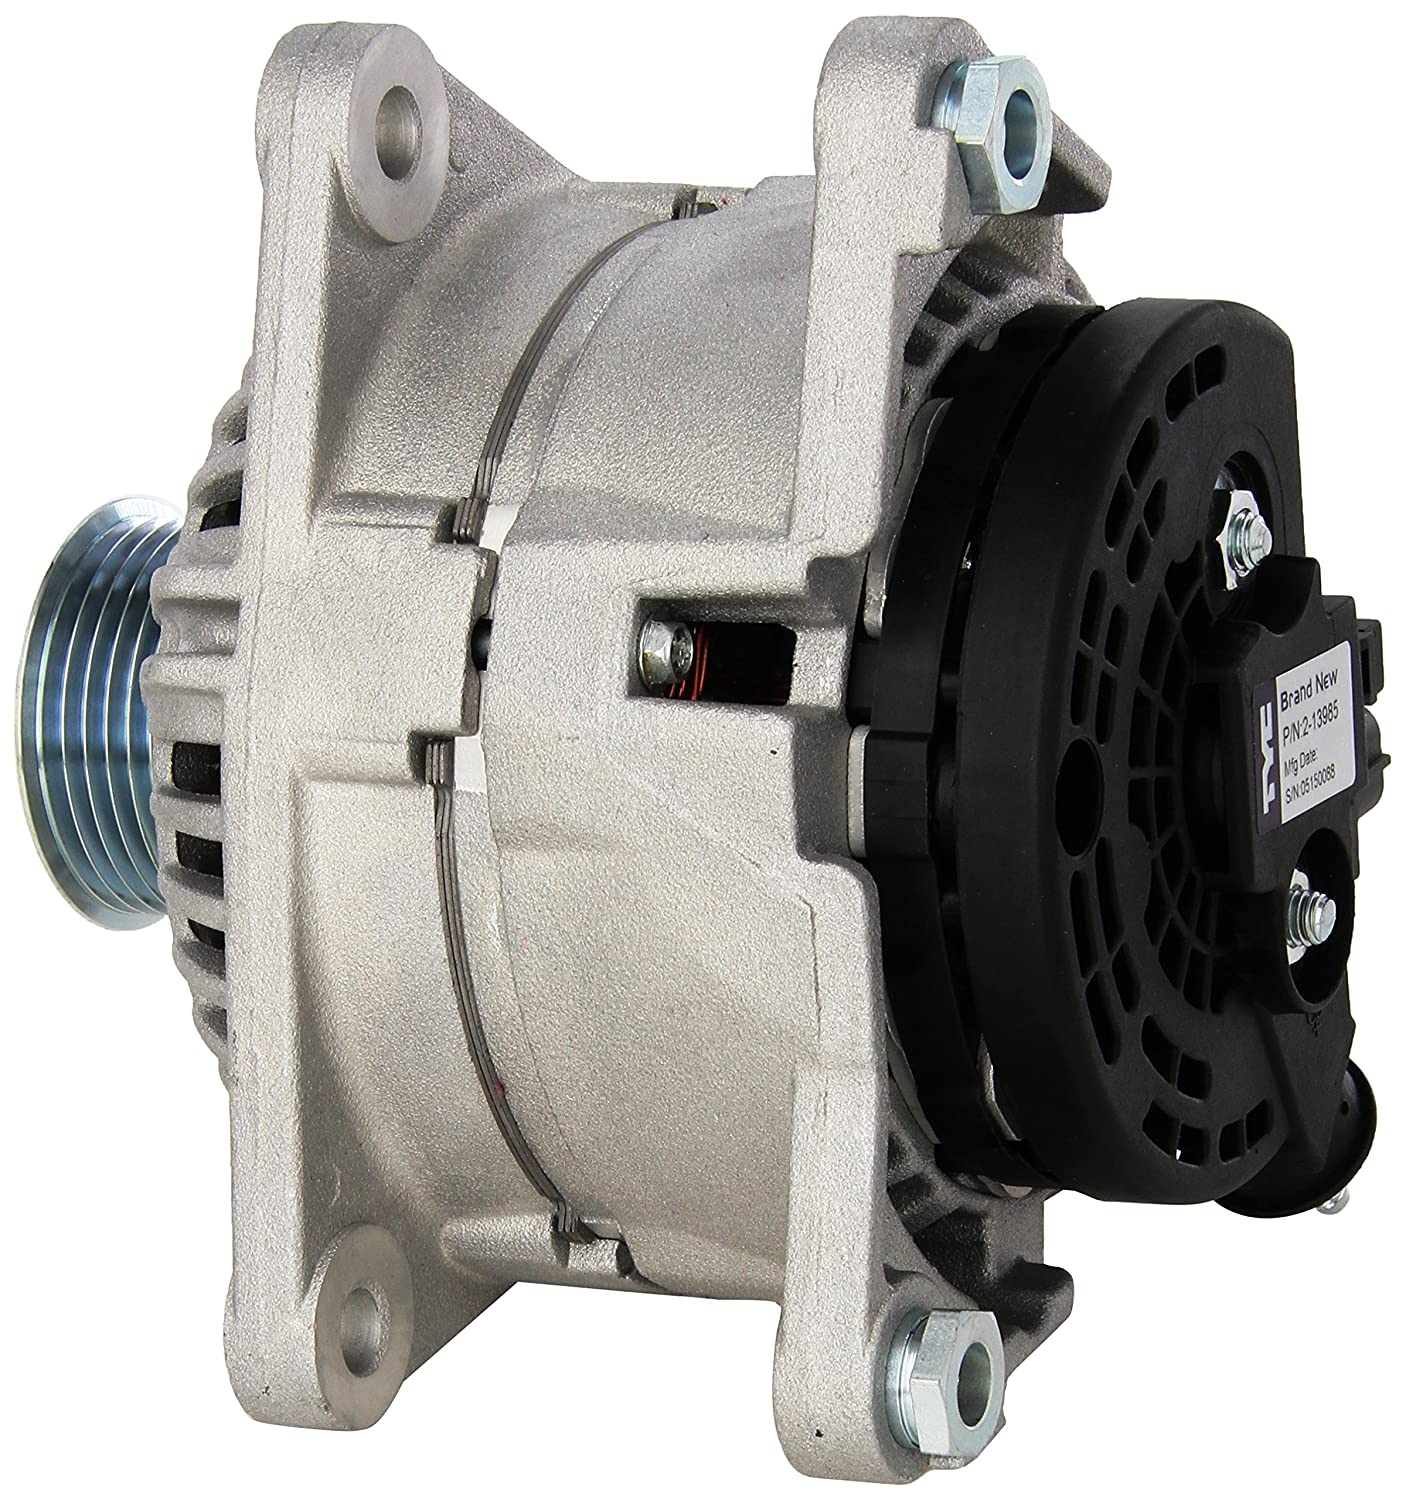 TYC 2-13985 Replacement Alternator for Dodge